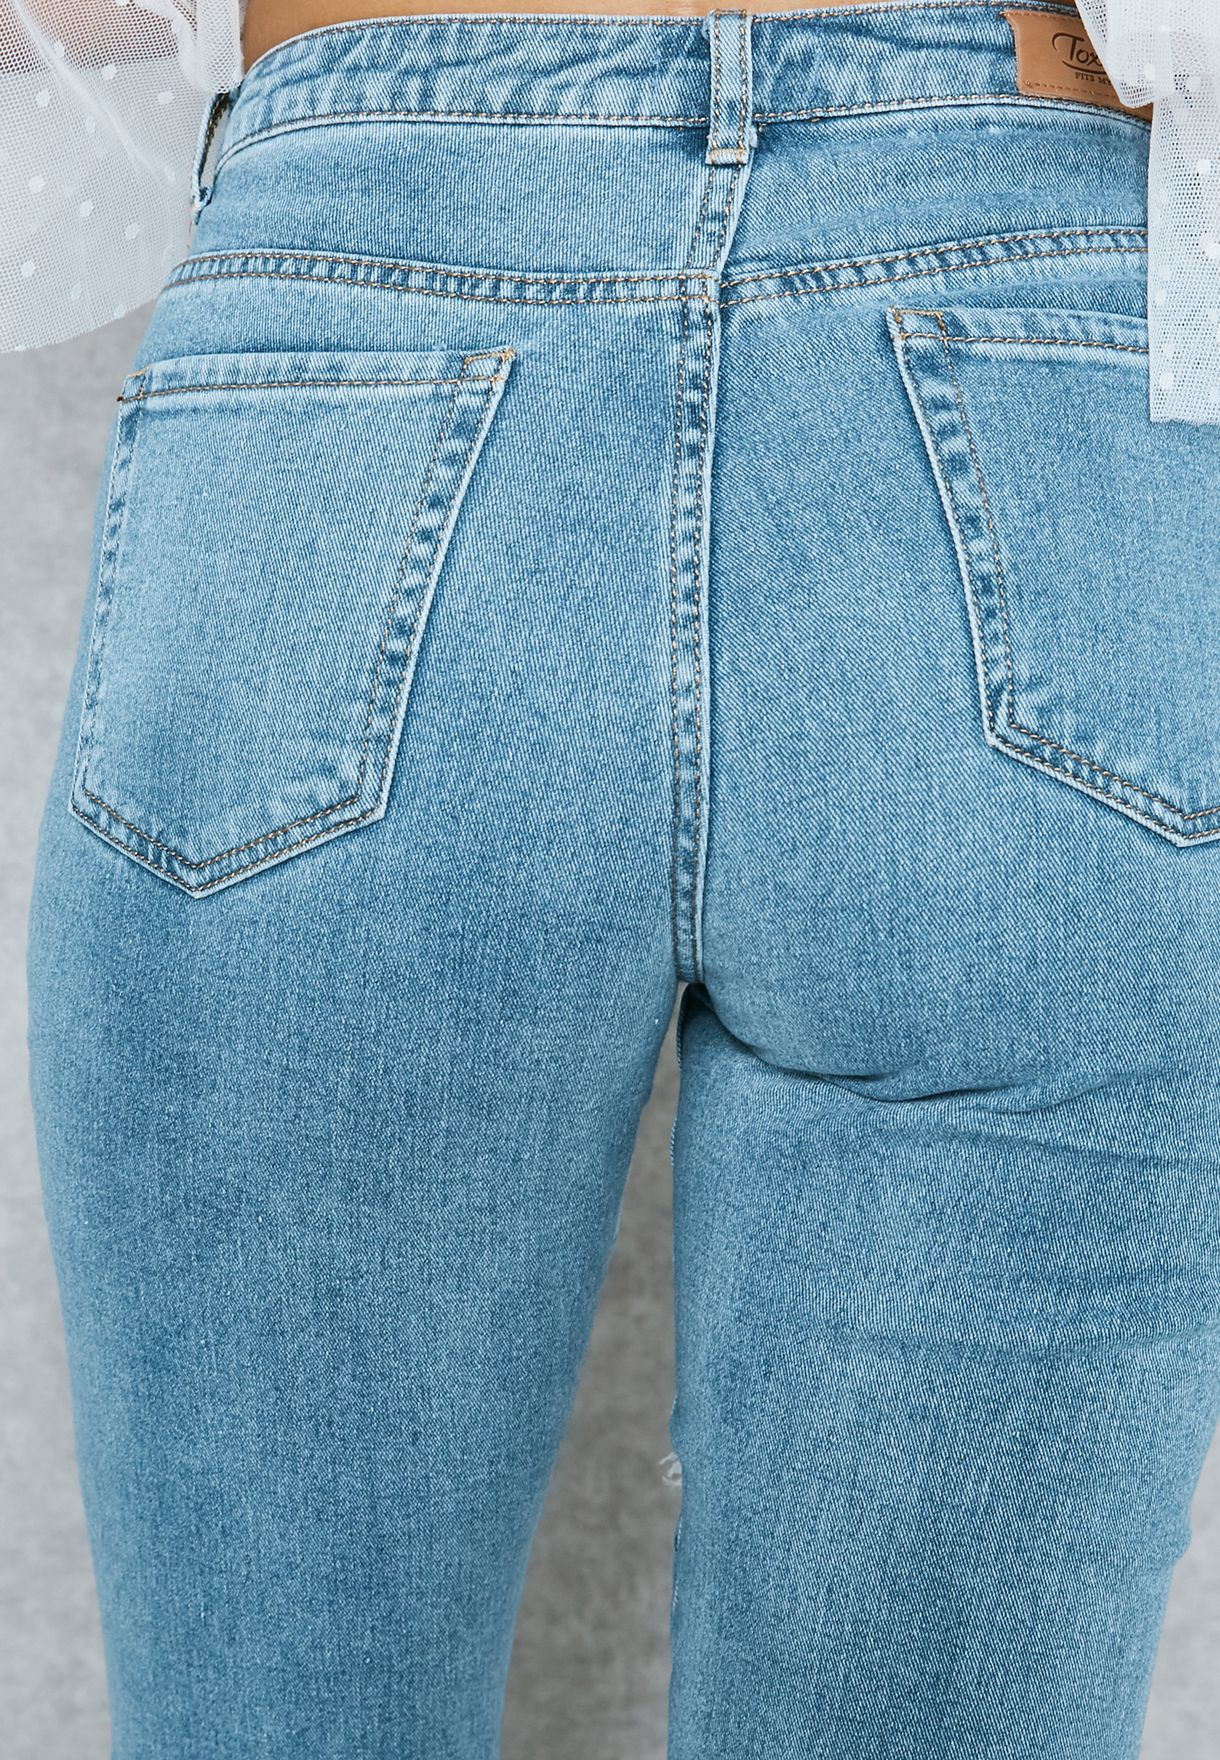 5c069af3339 Shop Ginger blue Pearl Net Insert Ripped Mom Jeans L968 for Women in ...